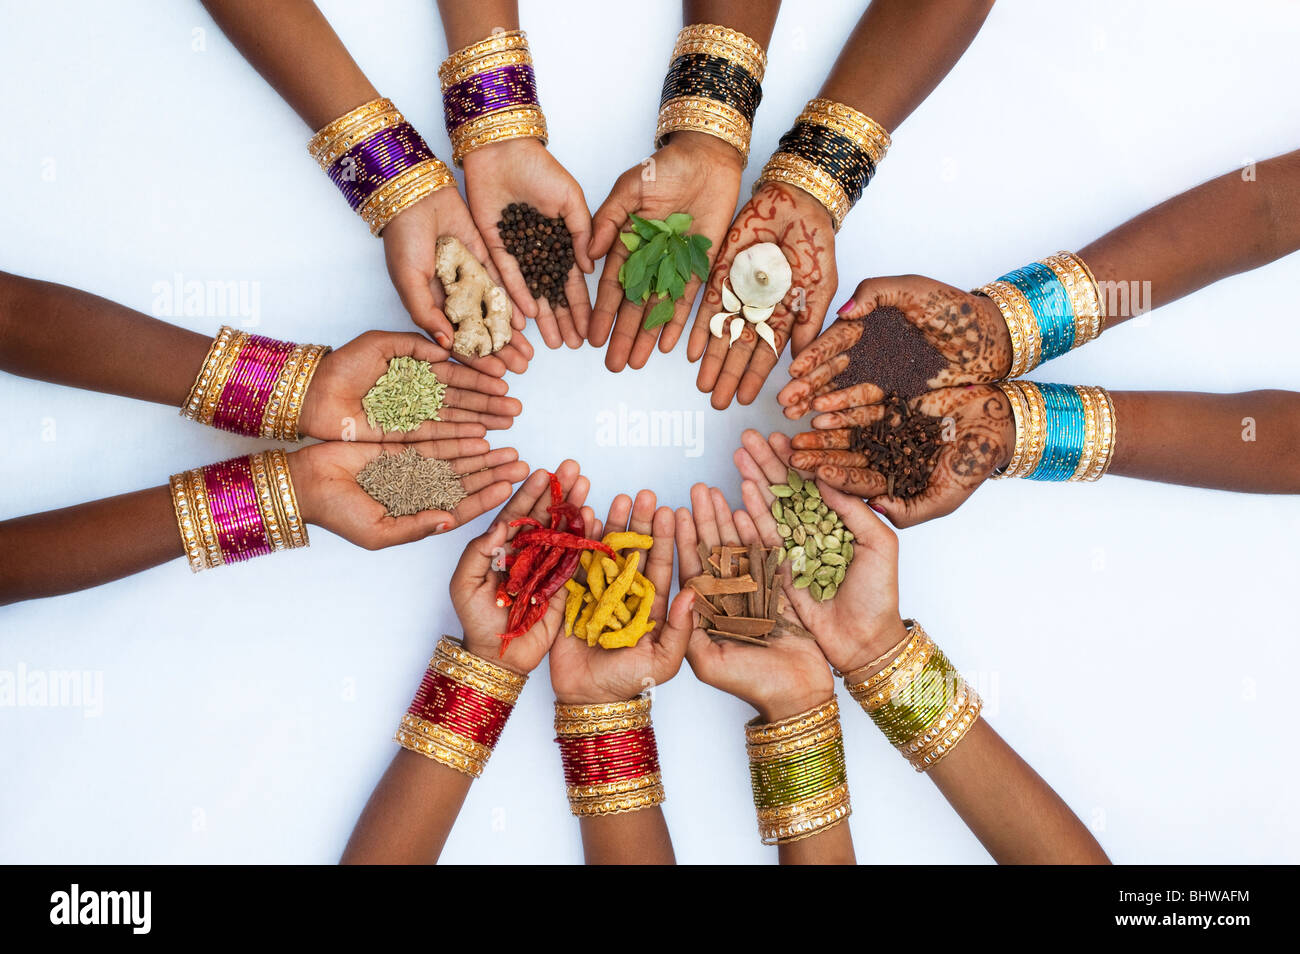 Indian children hands holding various indian cooking spices on white background - Stock Image